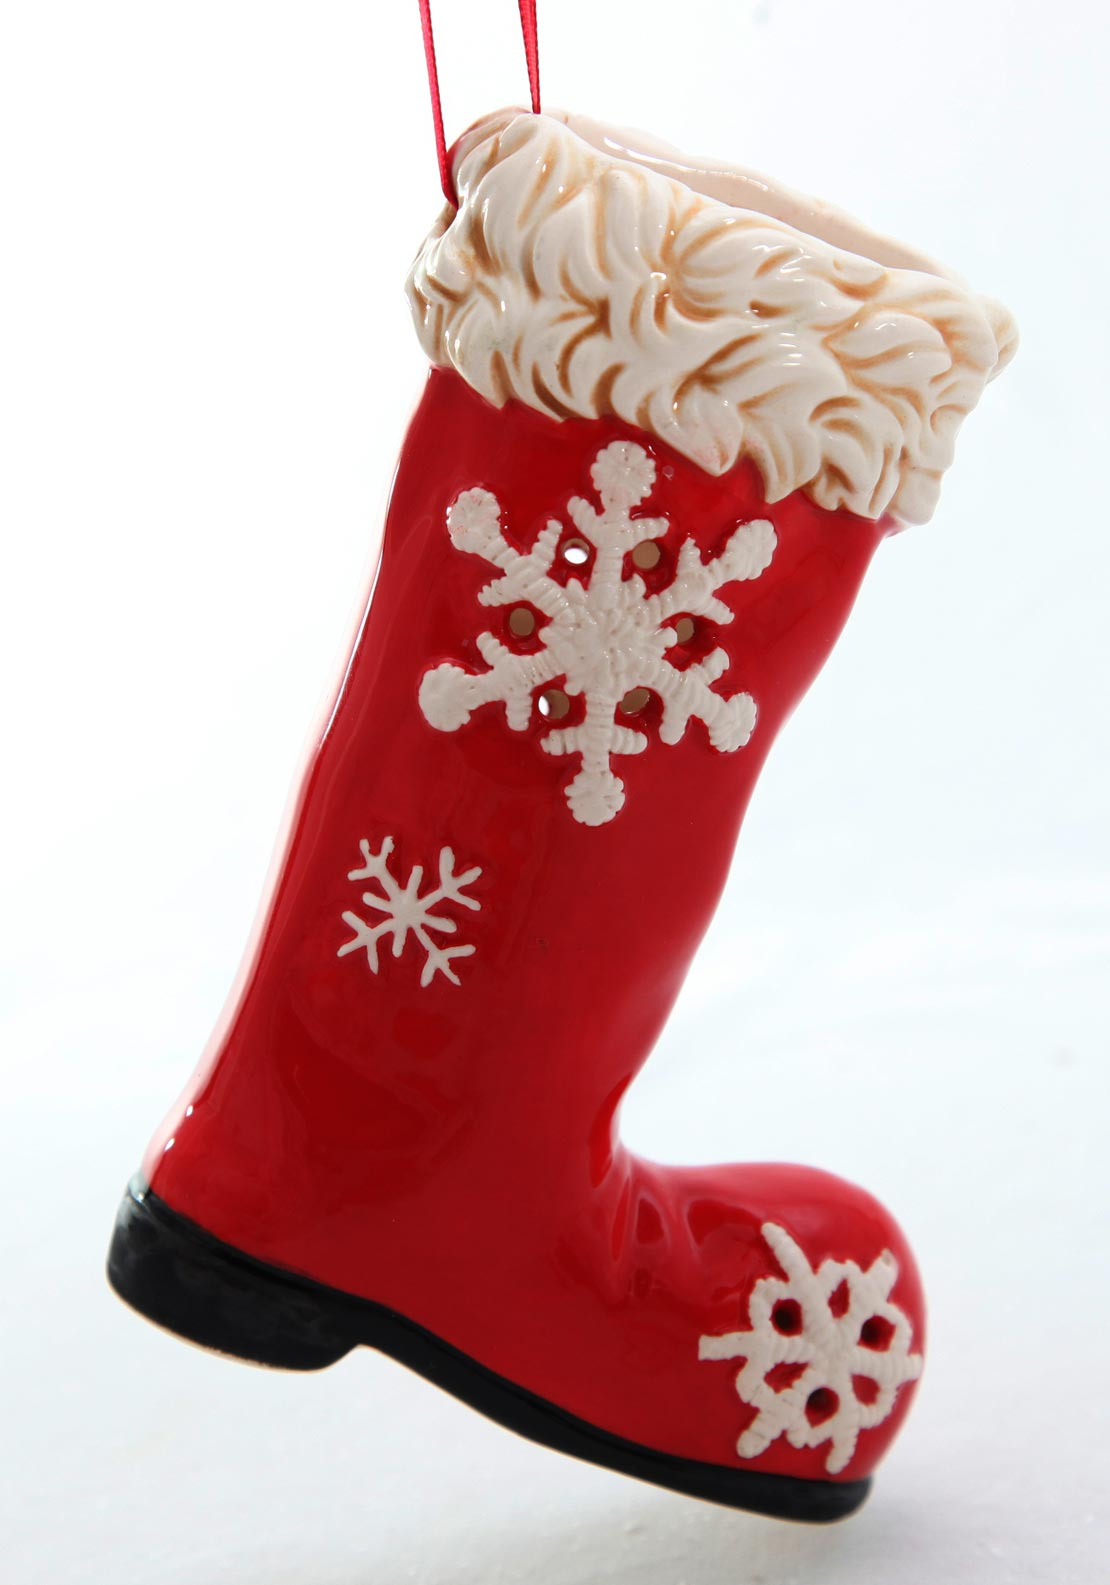 Verano Christmas Small Boot Hanging Decoration